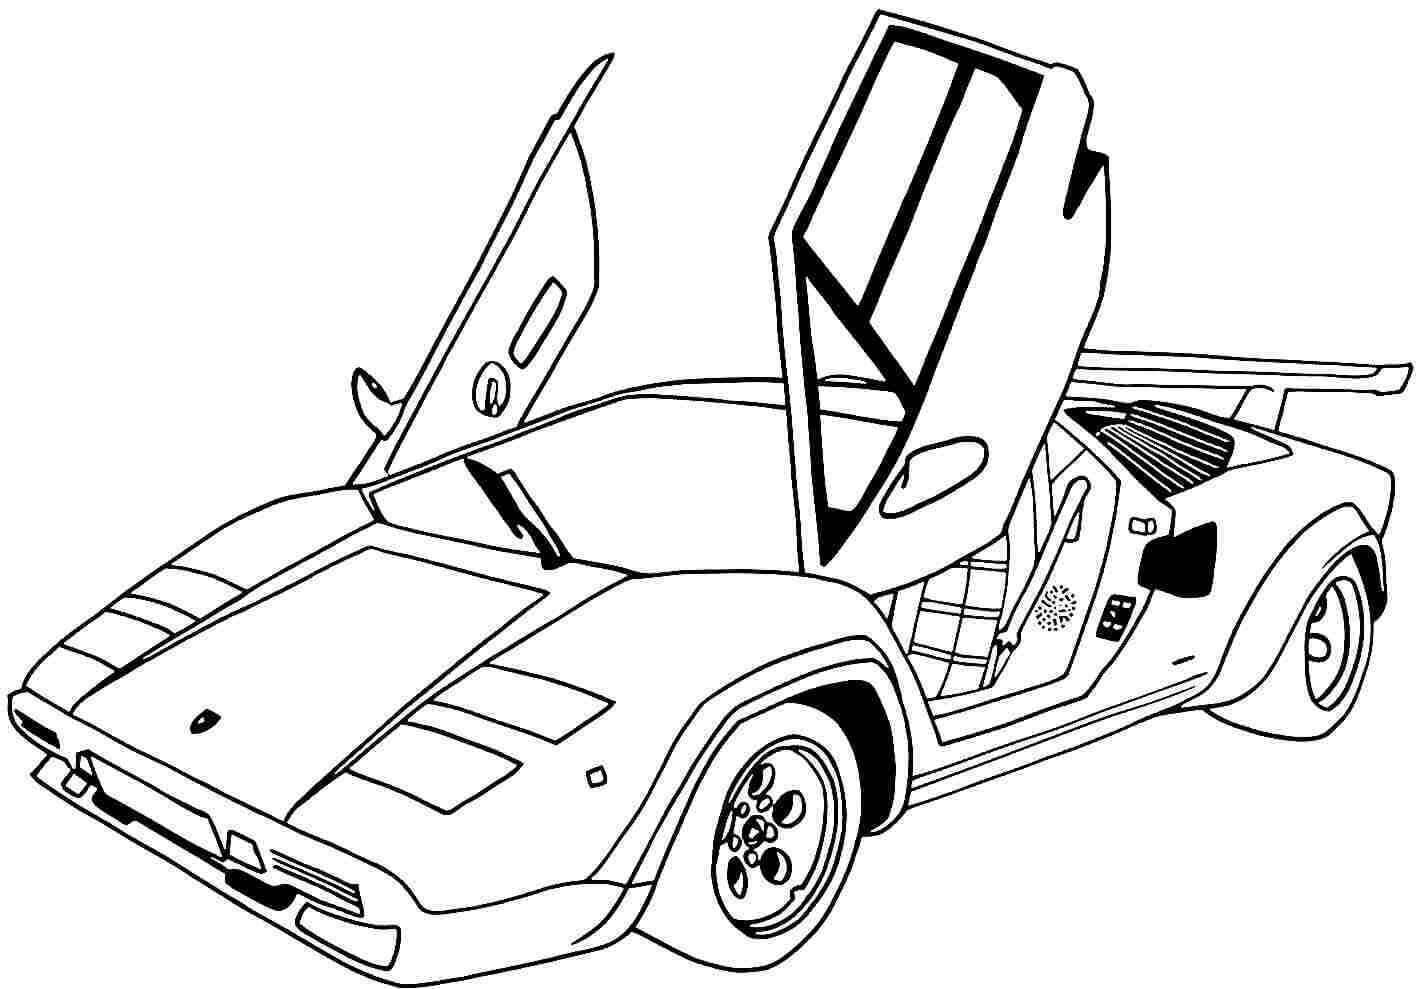 cars colouring page car coloring pages best coloring pages for kids colouring cars page